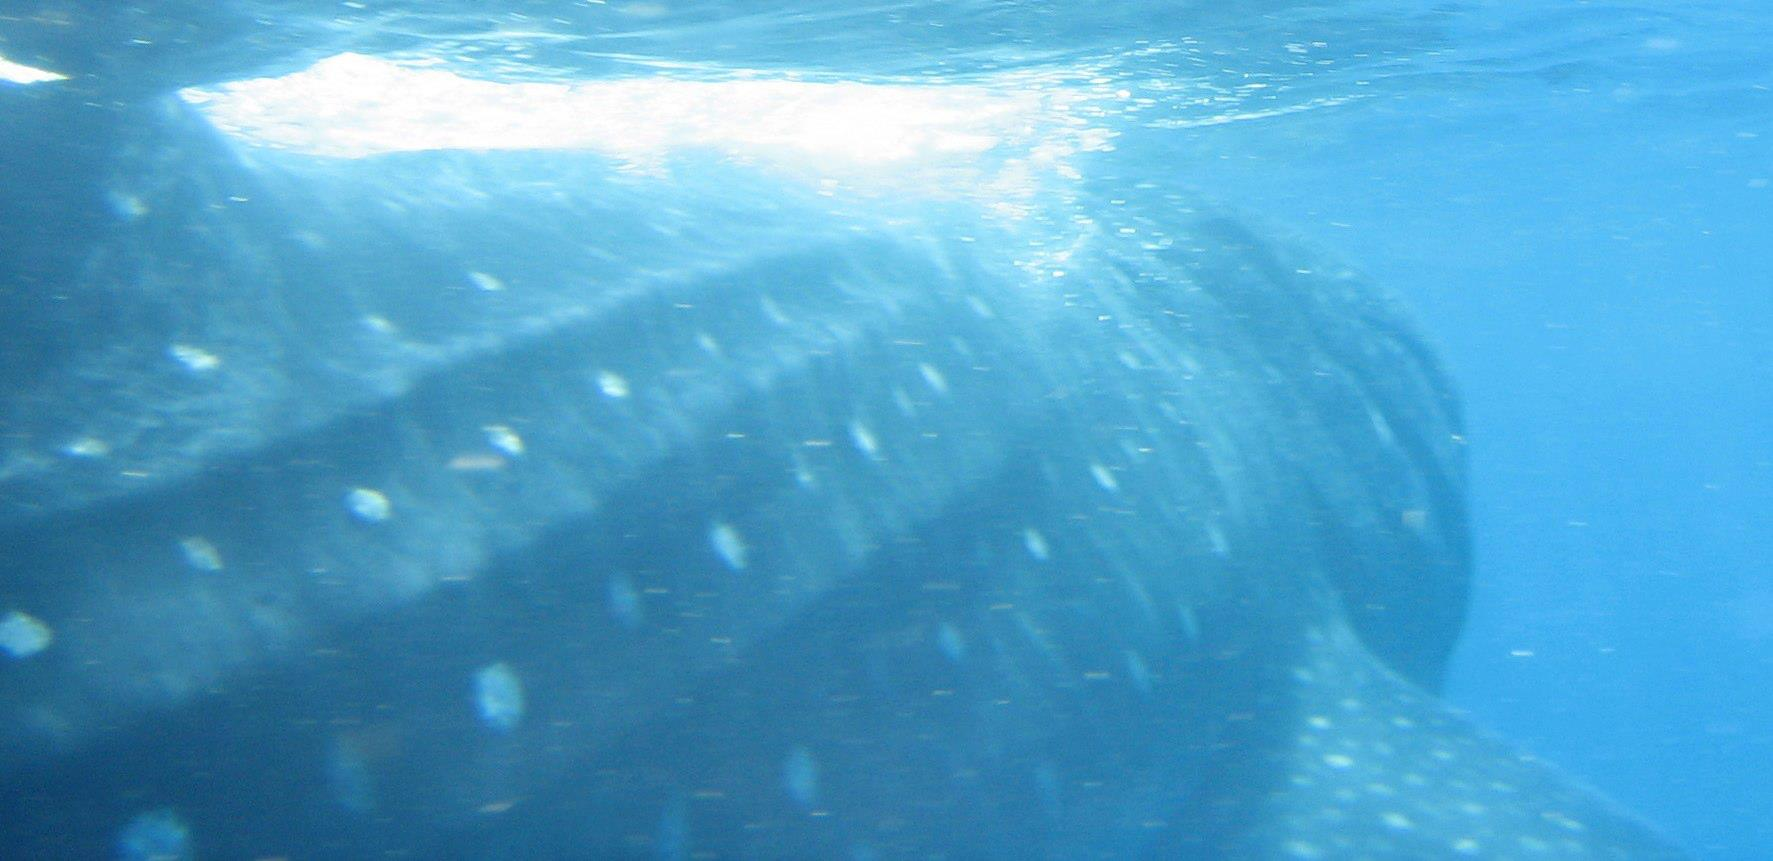 Snorkeling Whale Watching South Padre Island Reviews